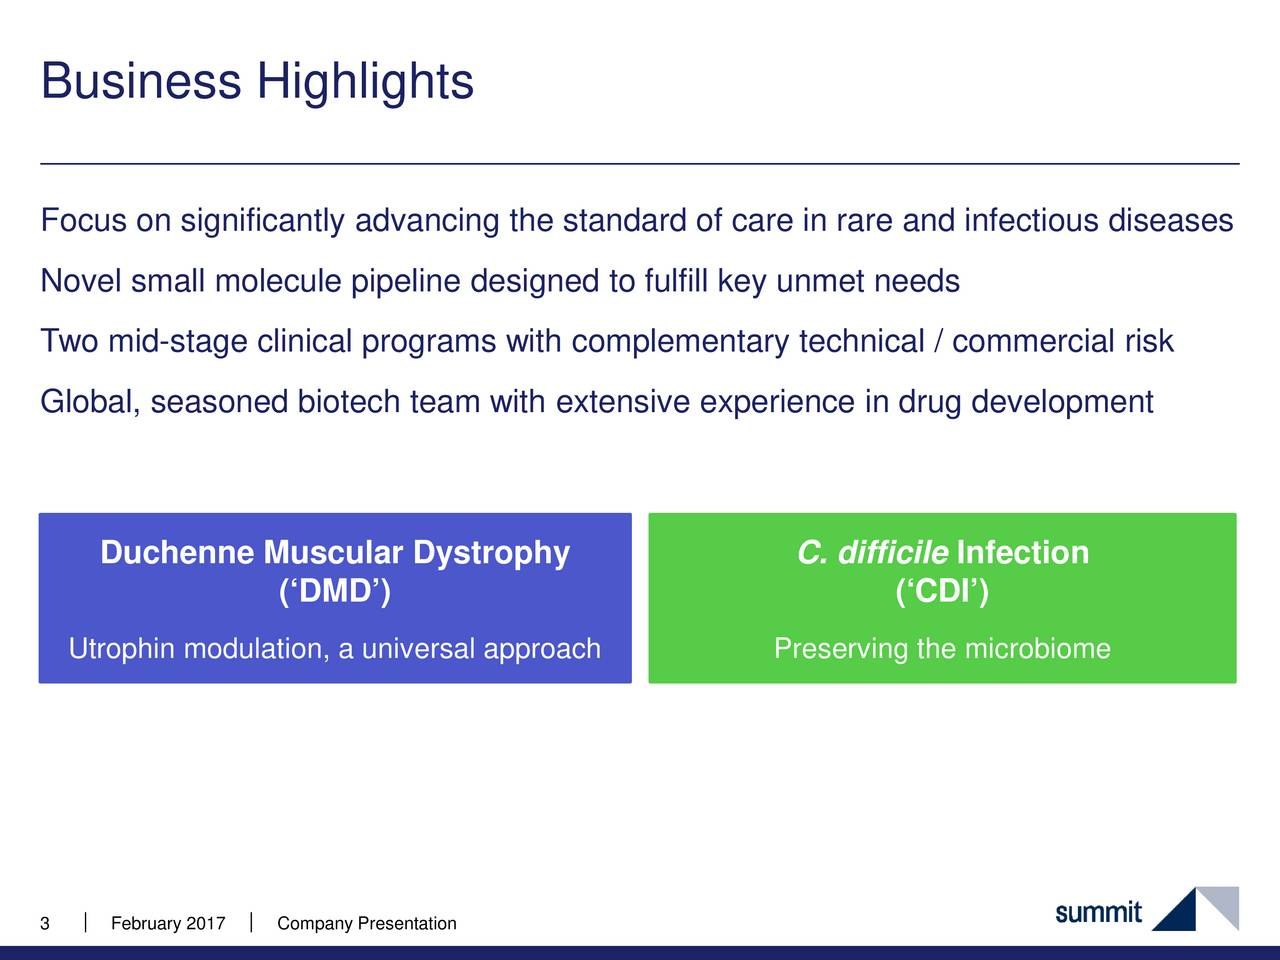 Duchenne Muscular Dystrophy Quotes Summit Therapeutics Smmt Presents At 19th Annual Bio Ceo